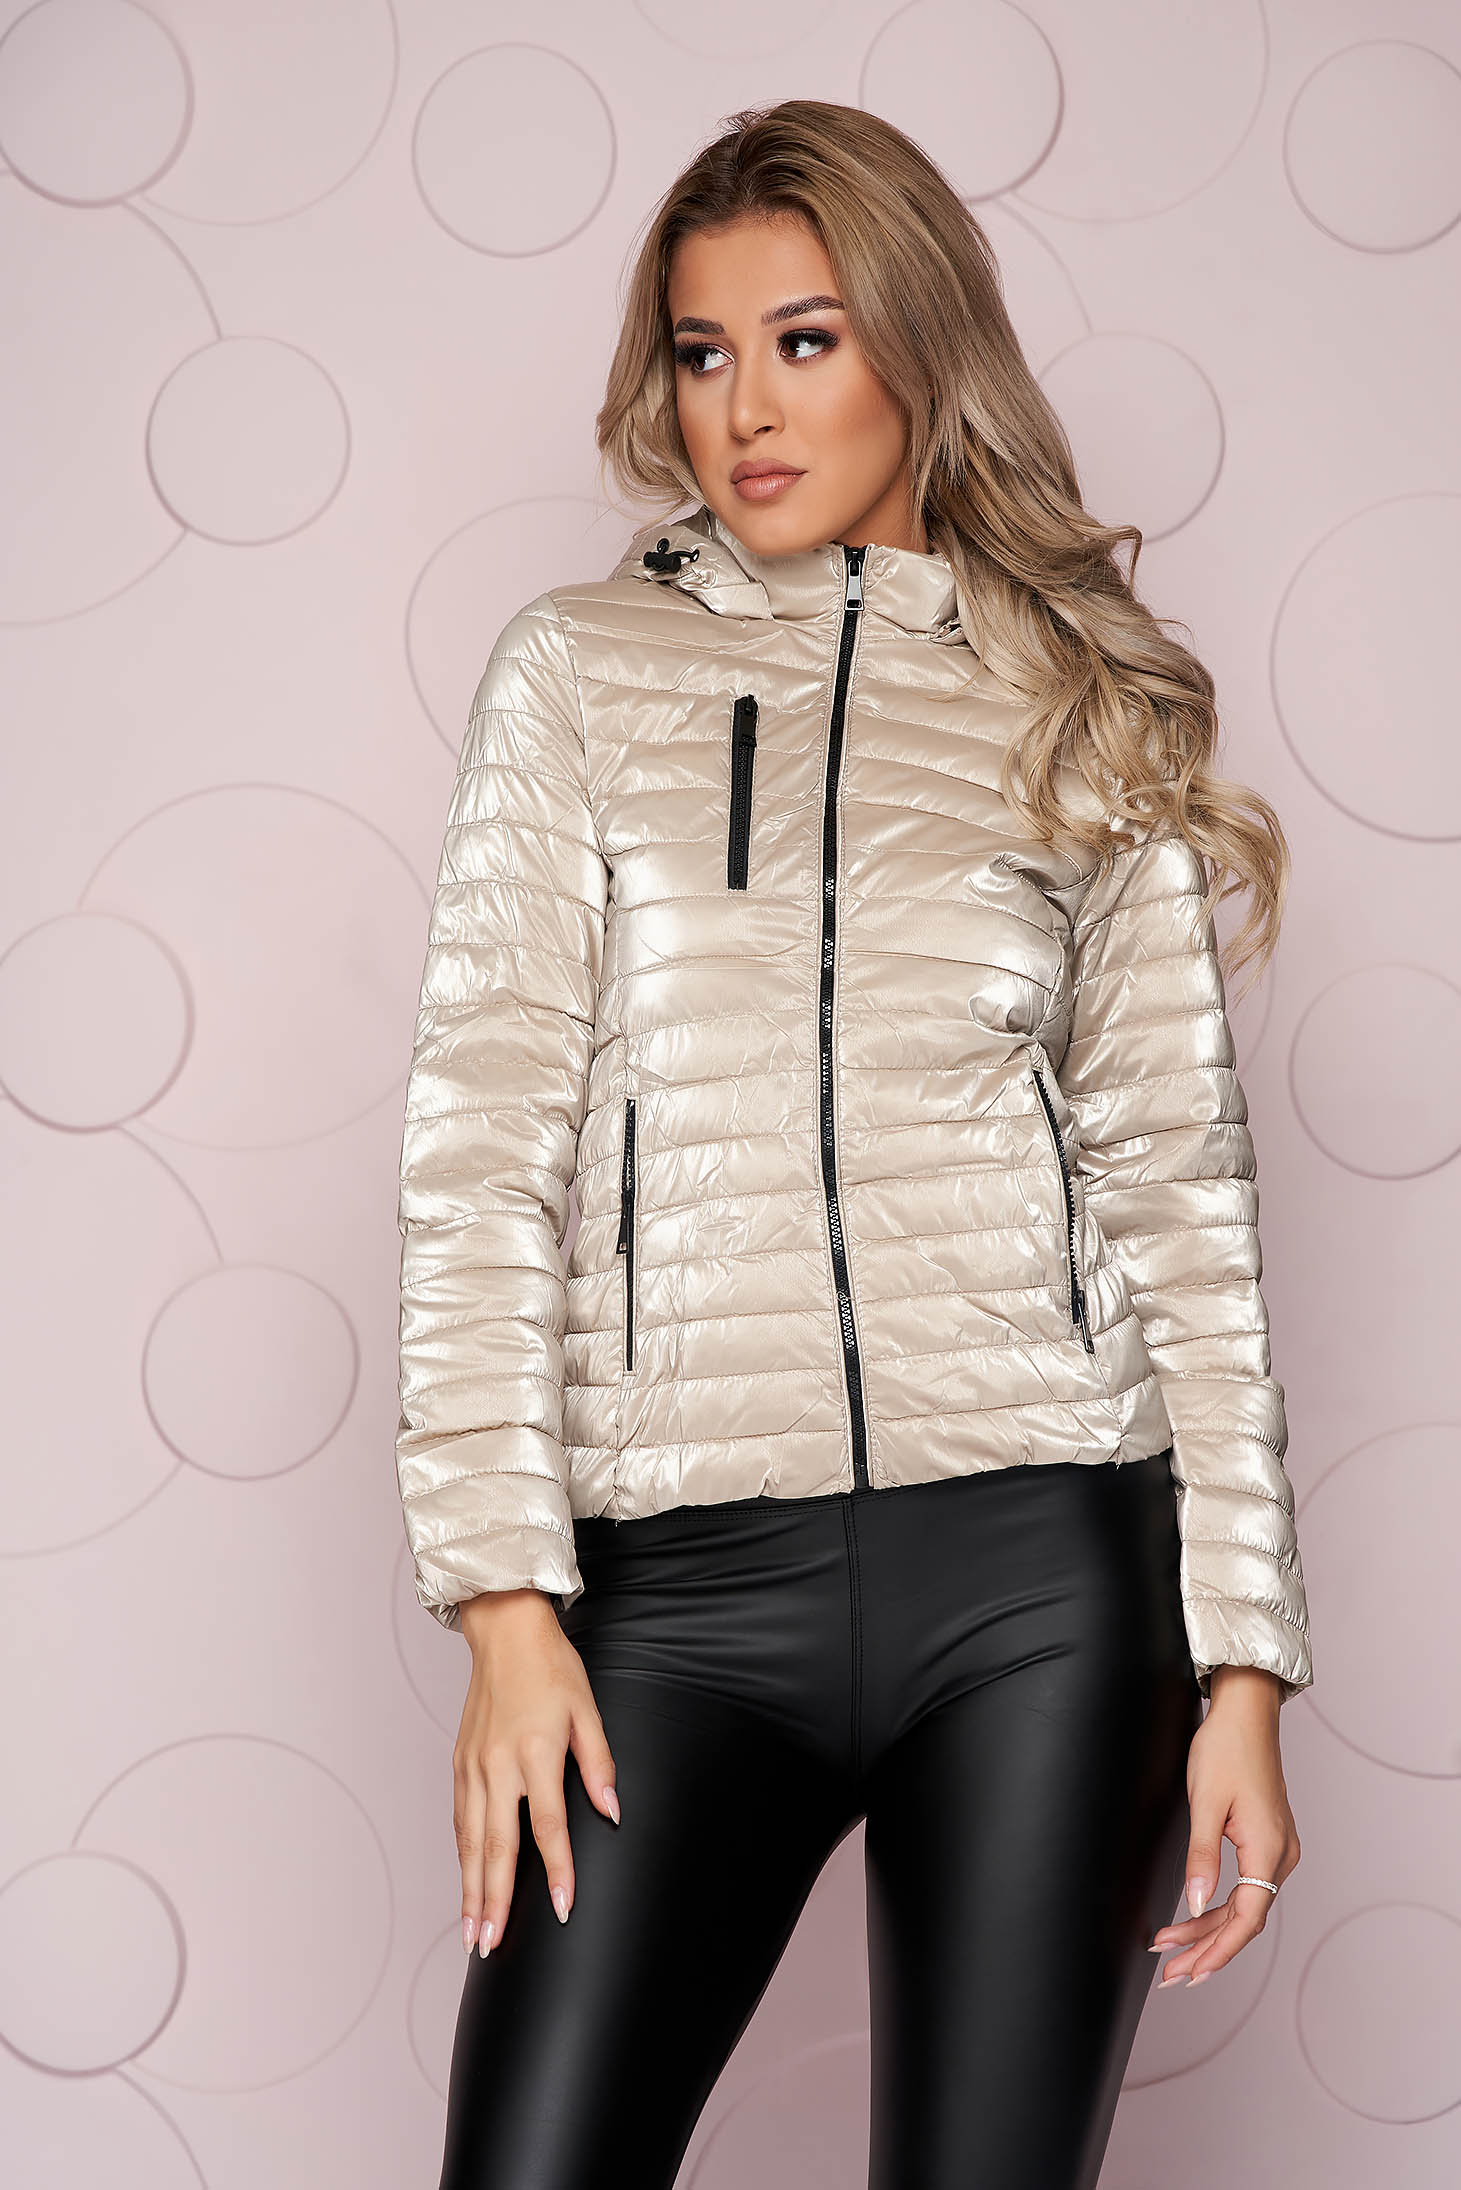 Silver jacket short cut from shiny fabric detachable hood arched cut